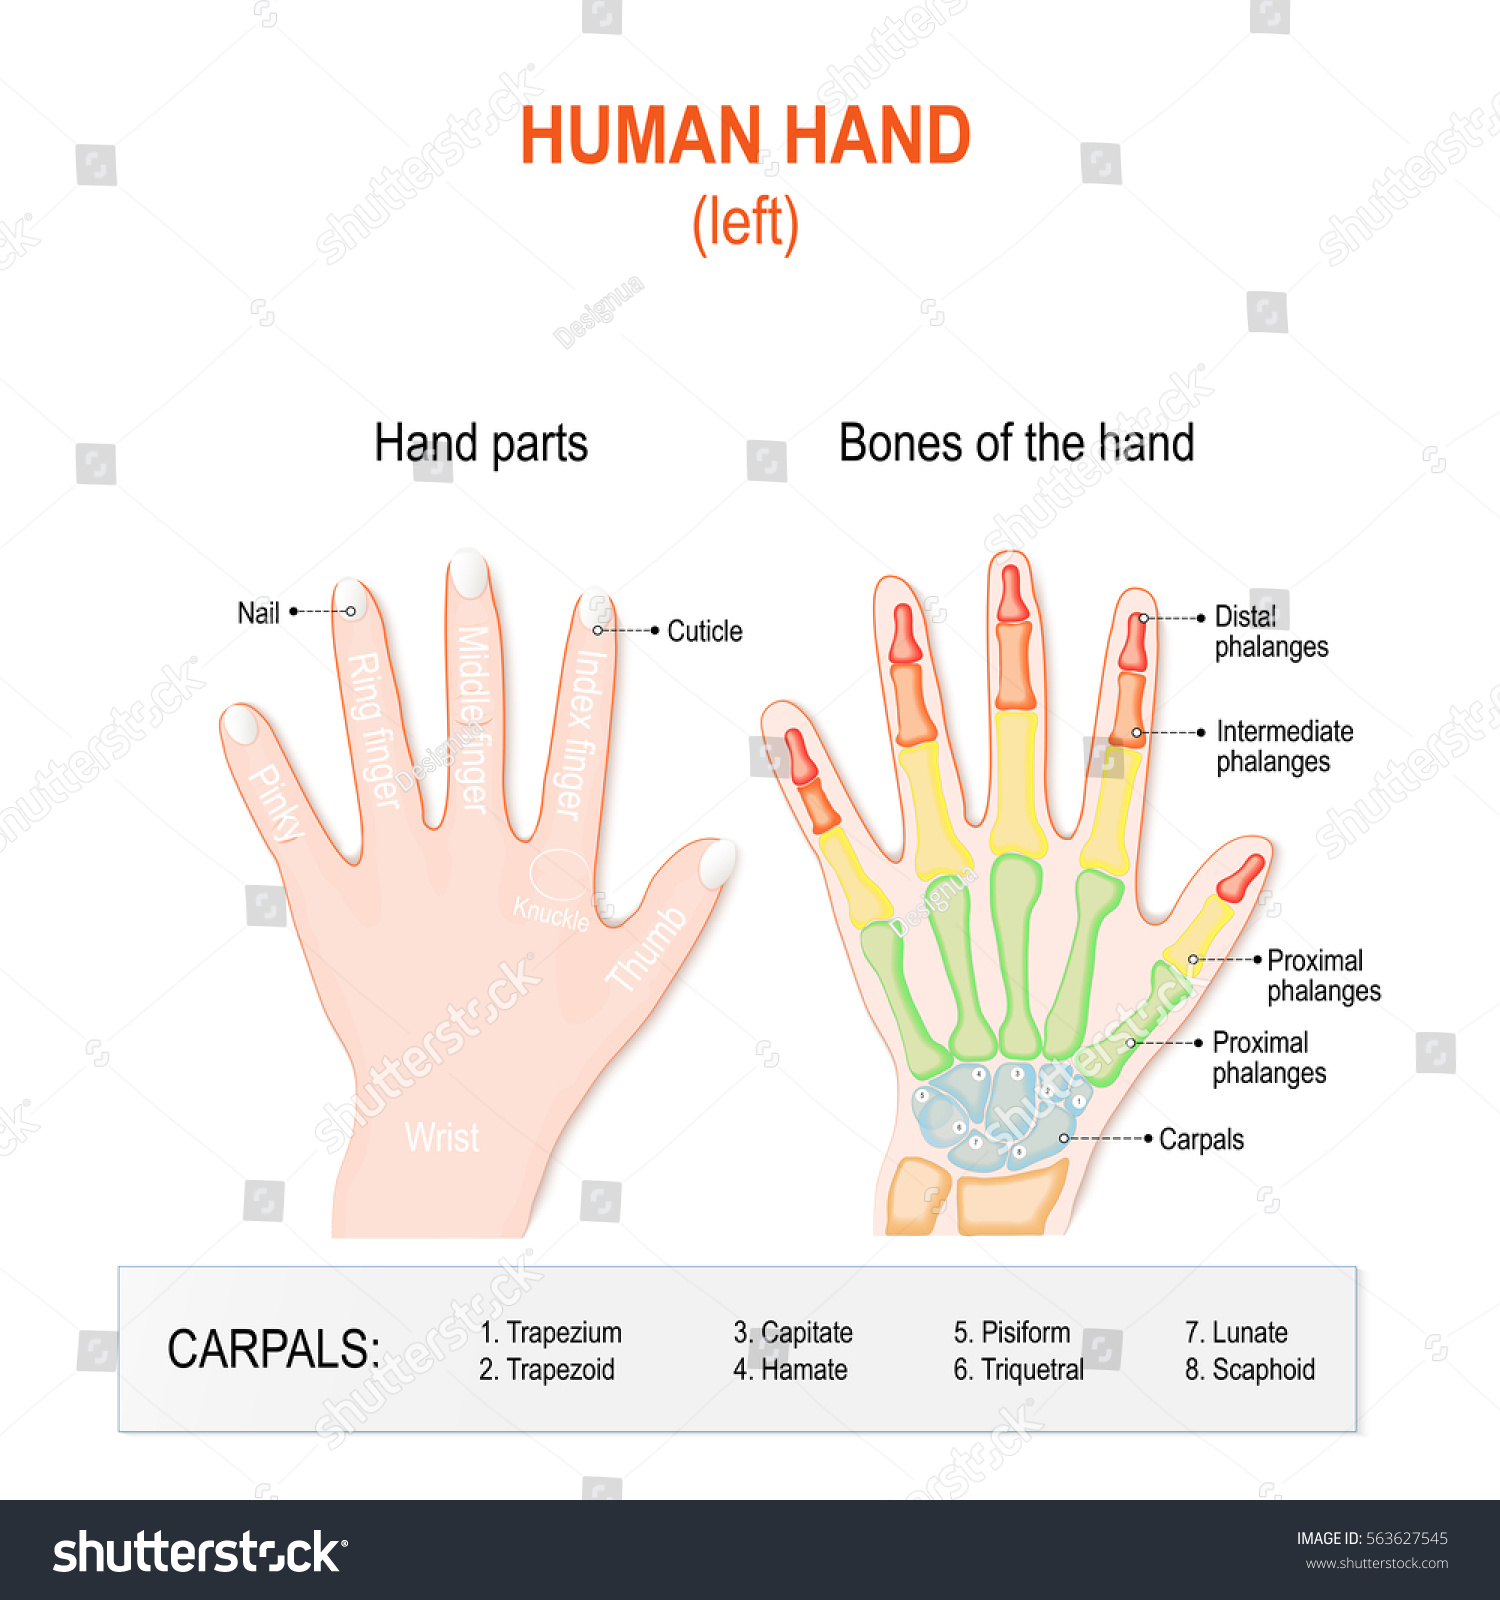 Human Hand Parts Bones Left Hand Stock Vector Royalty Free